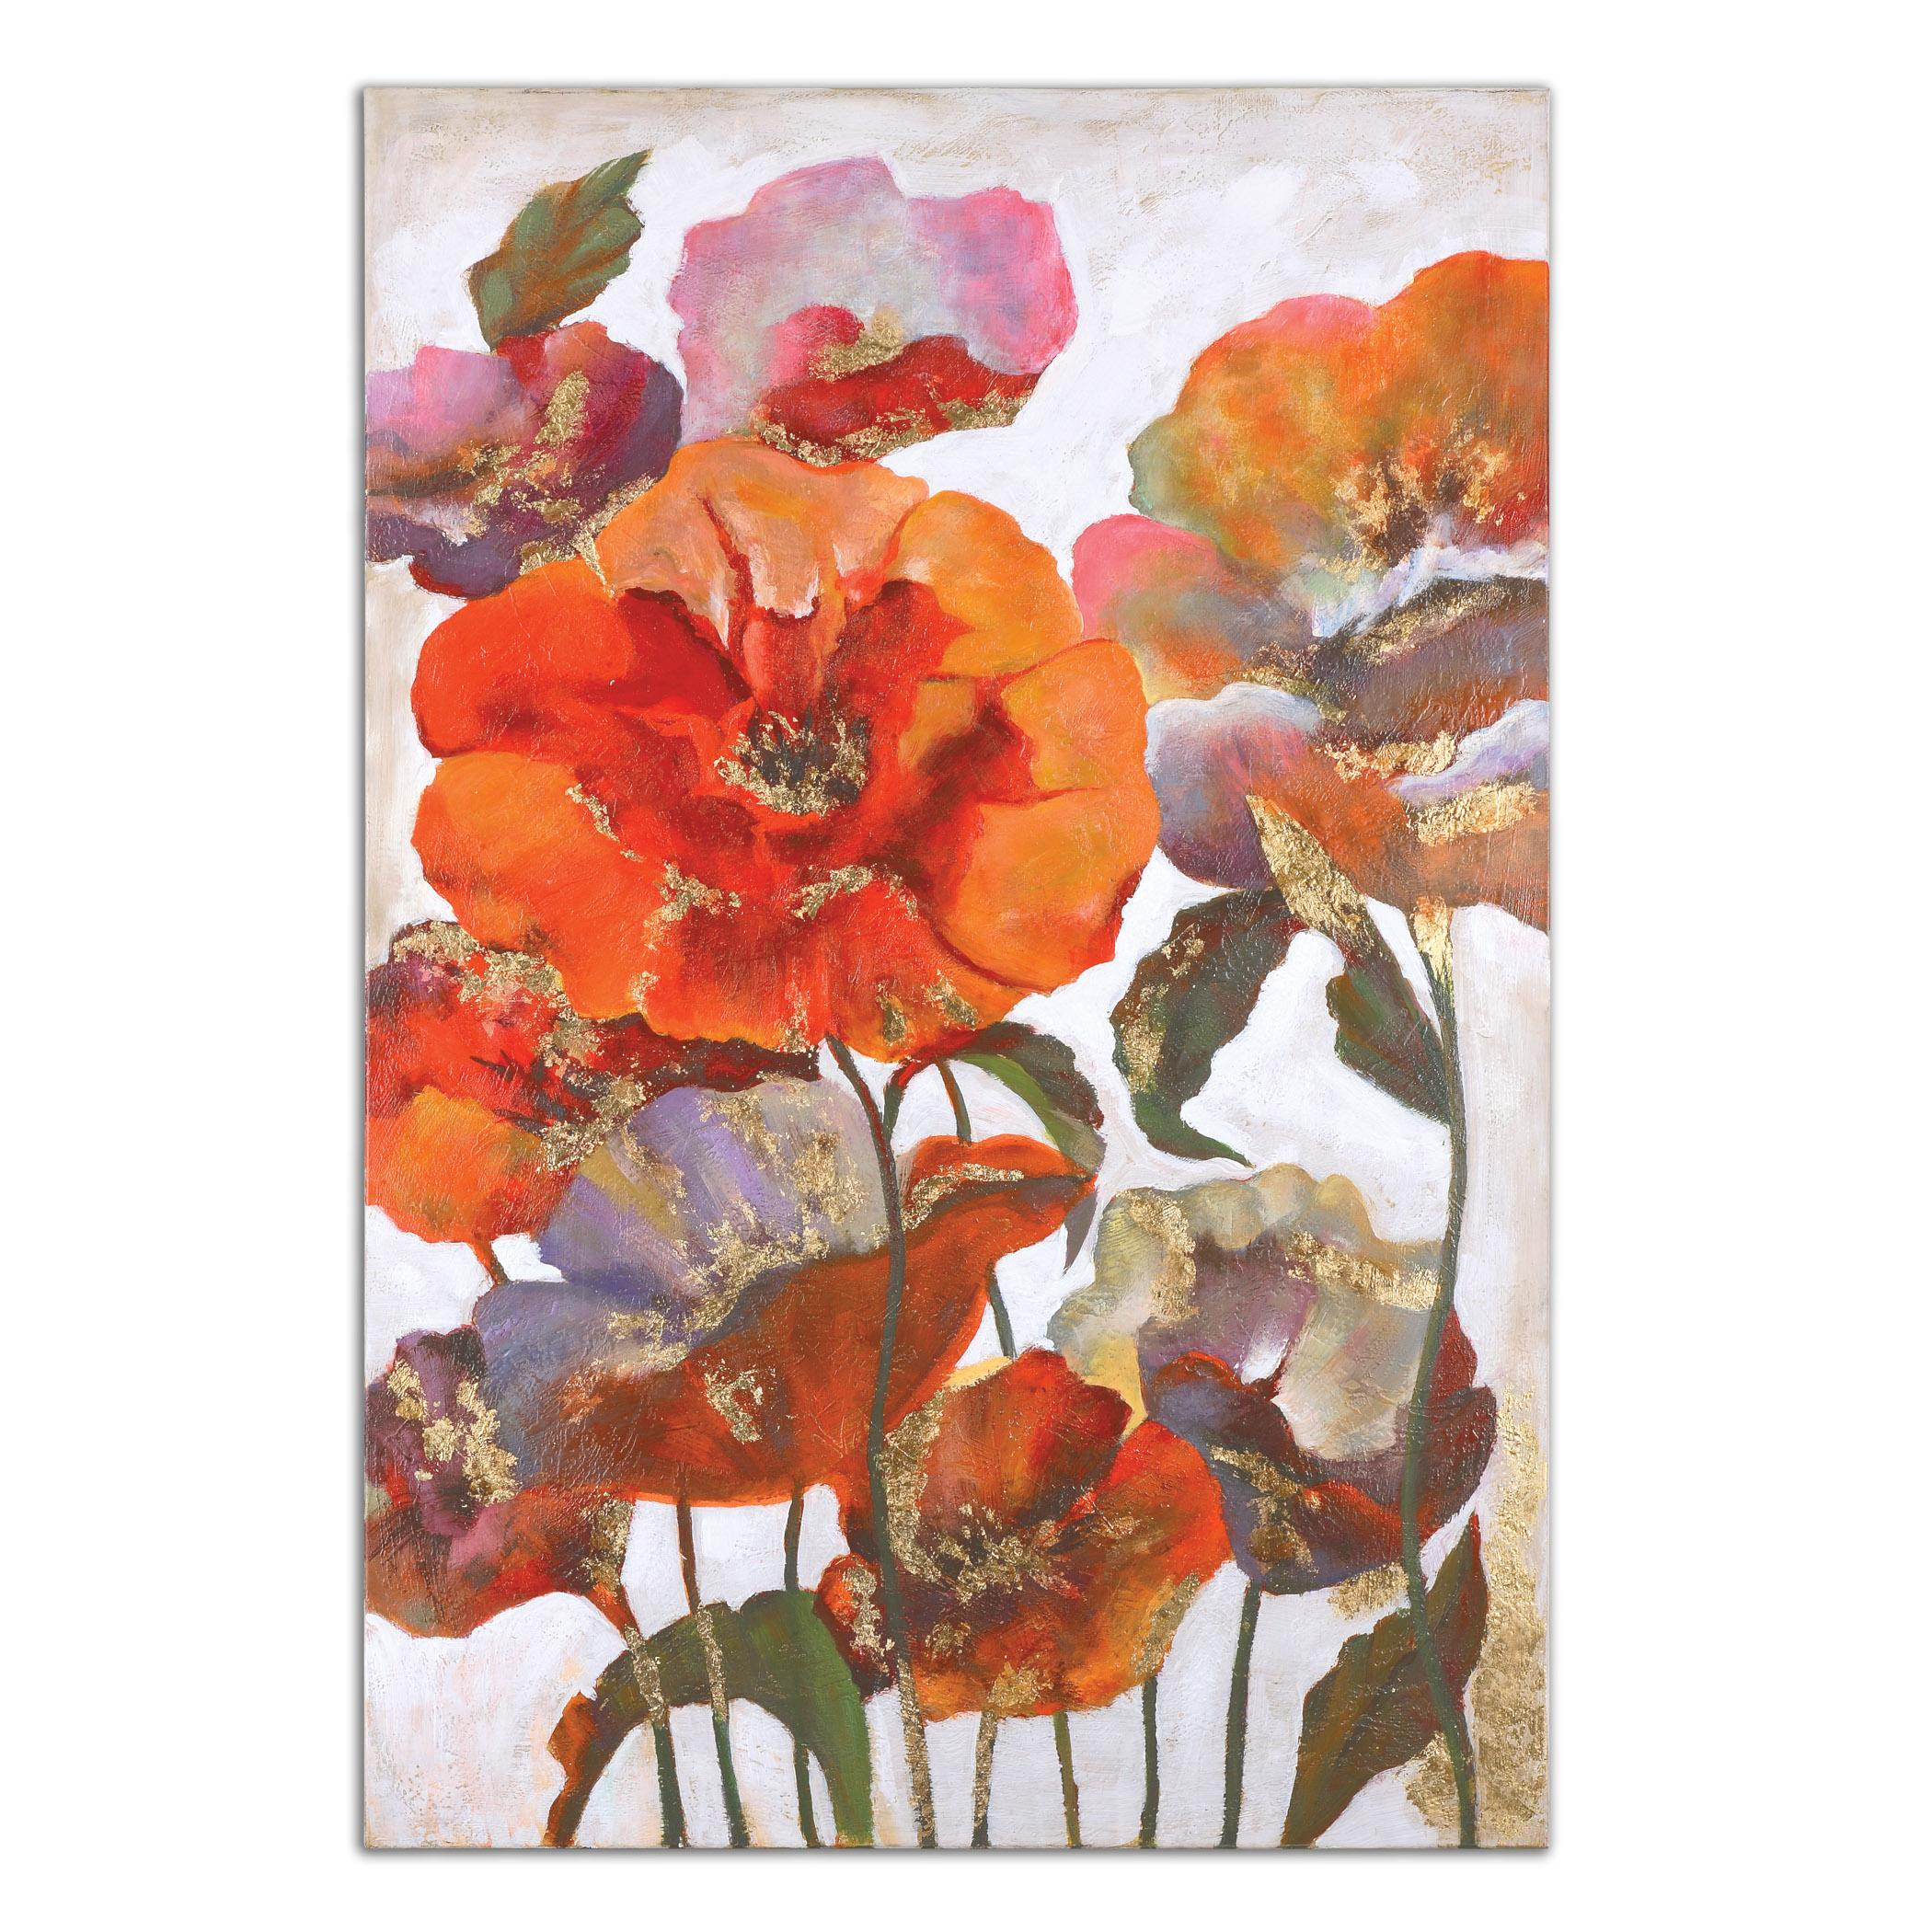 Uttermost Art Delightful Poppies Floral Art - Item Number: 35307